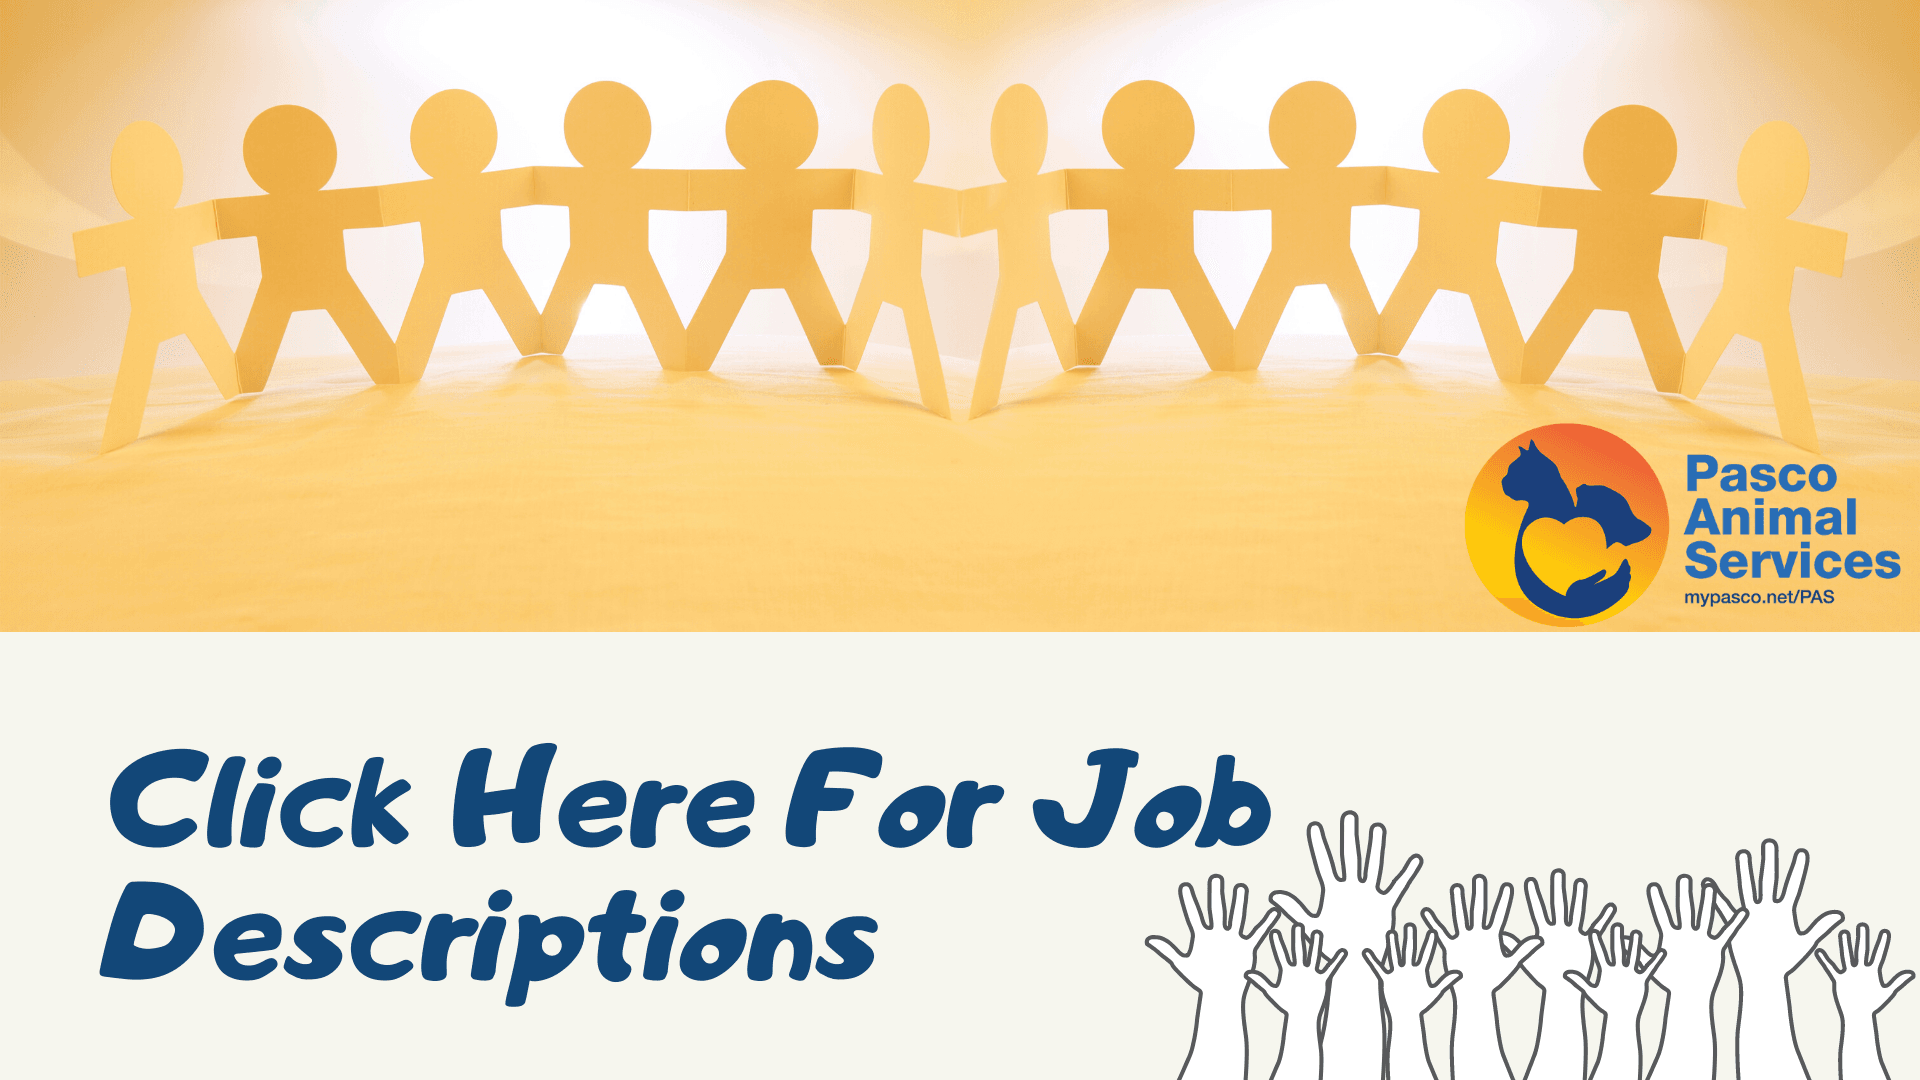 Click Here For Job Descriptions